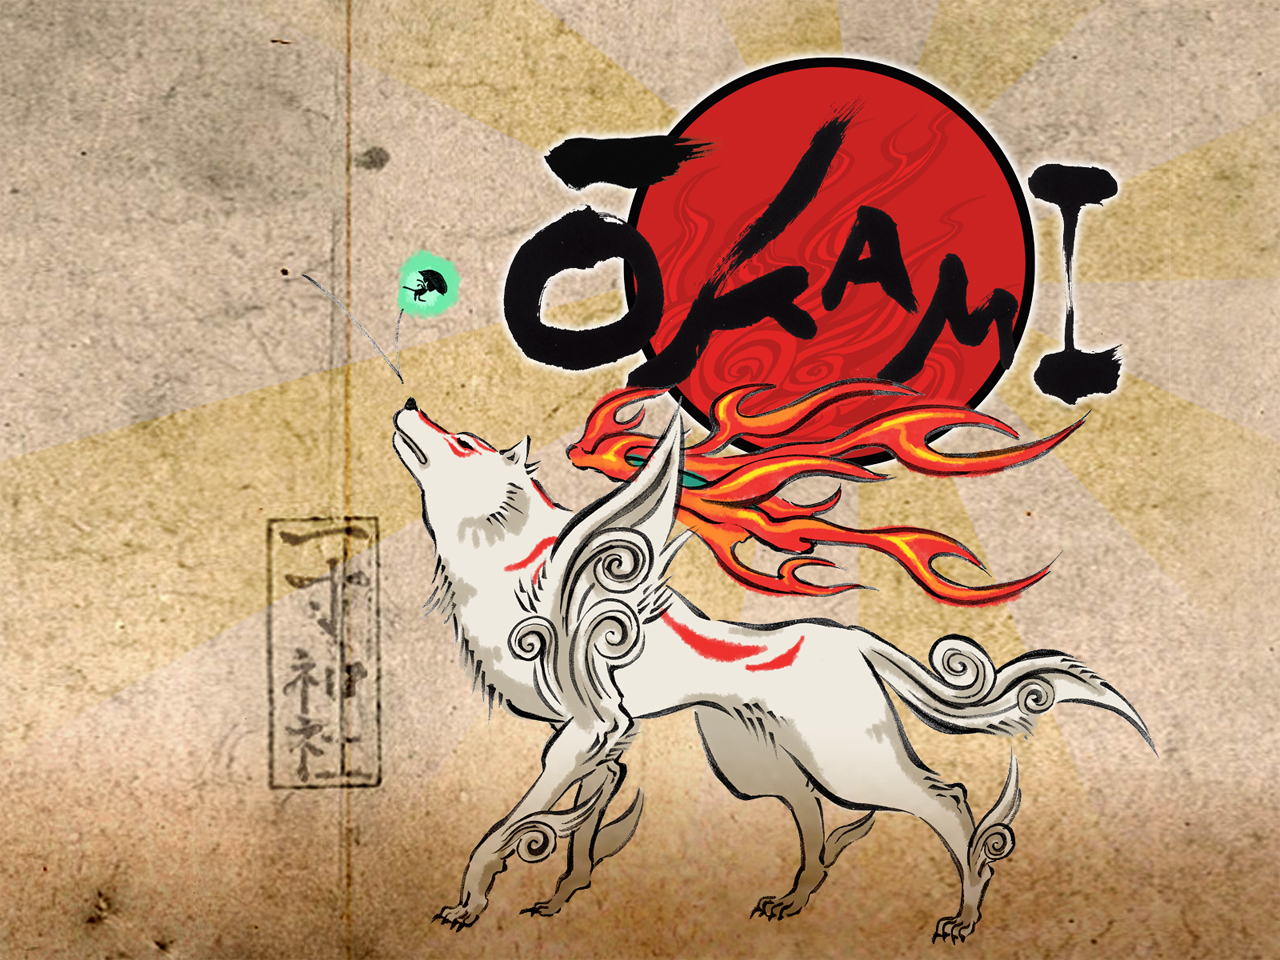 Okami – Culture and Meaning in a Game